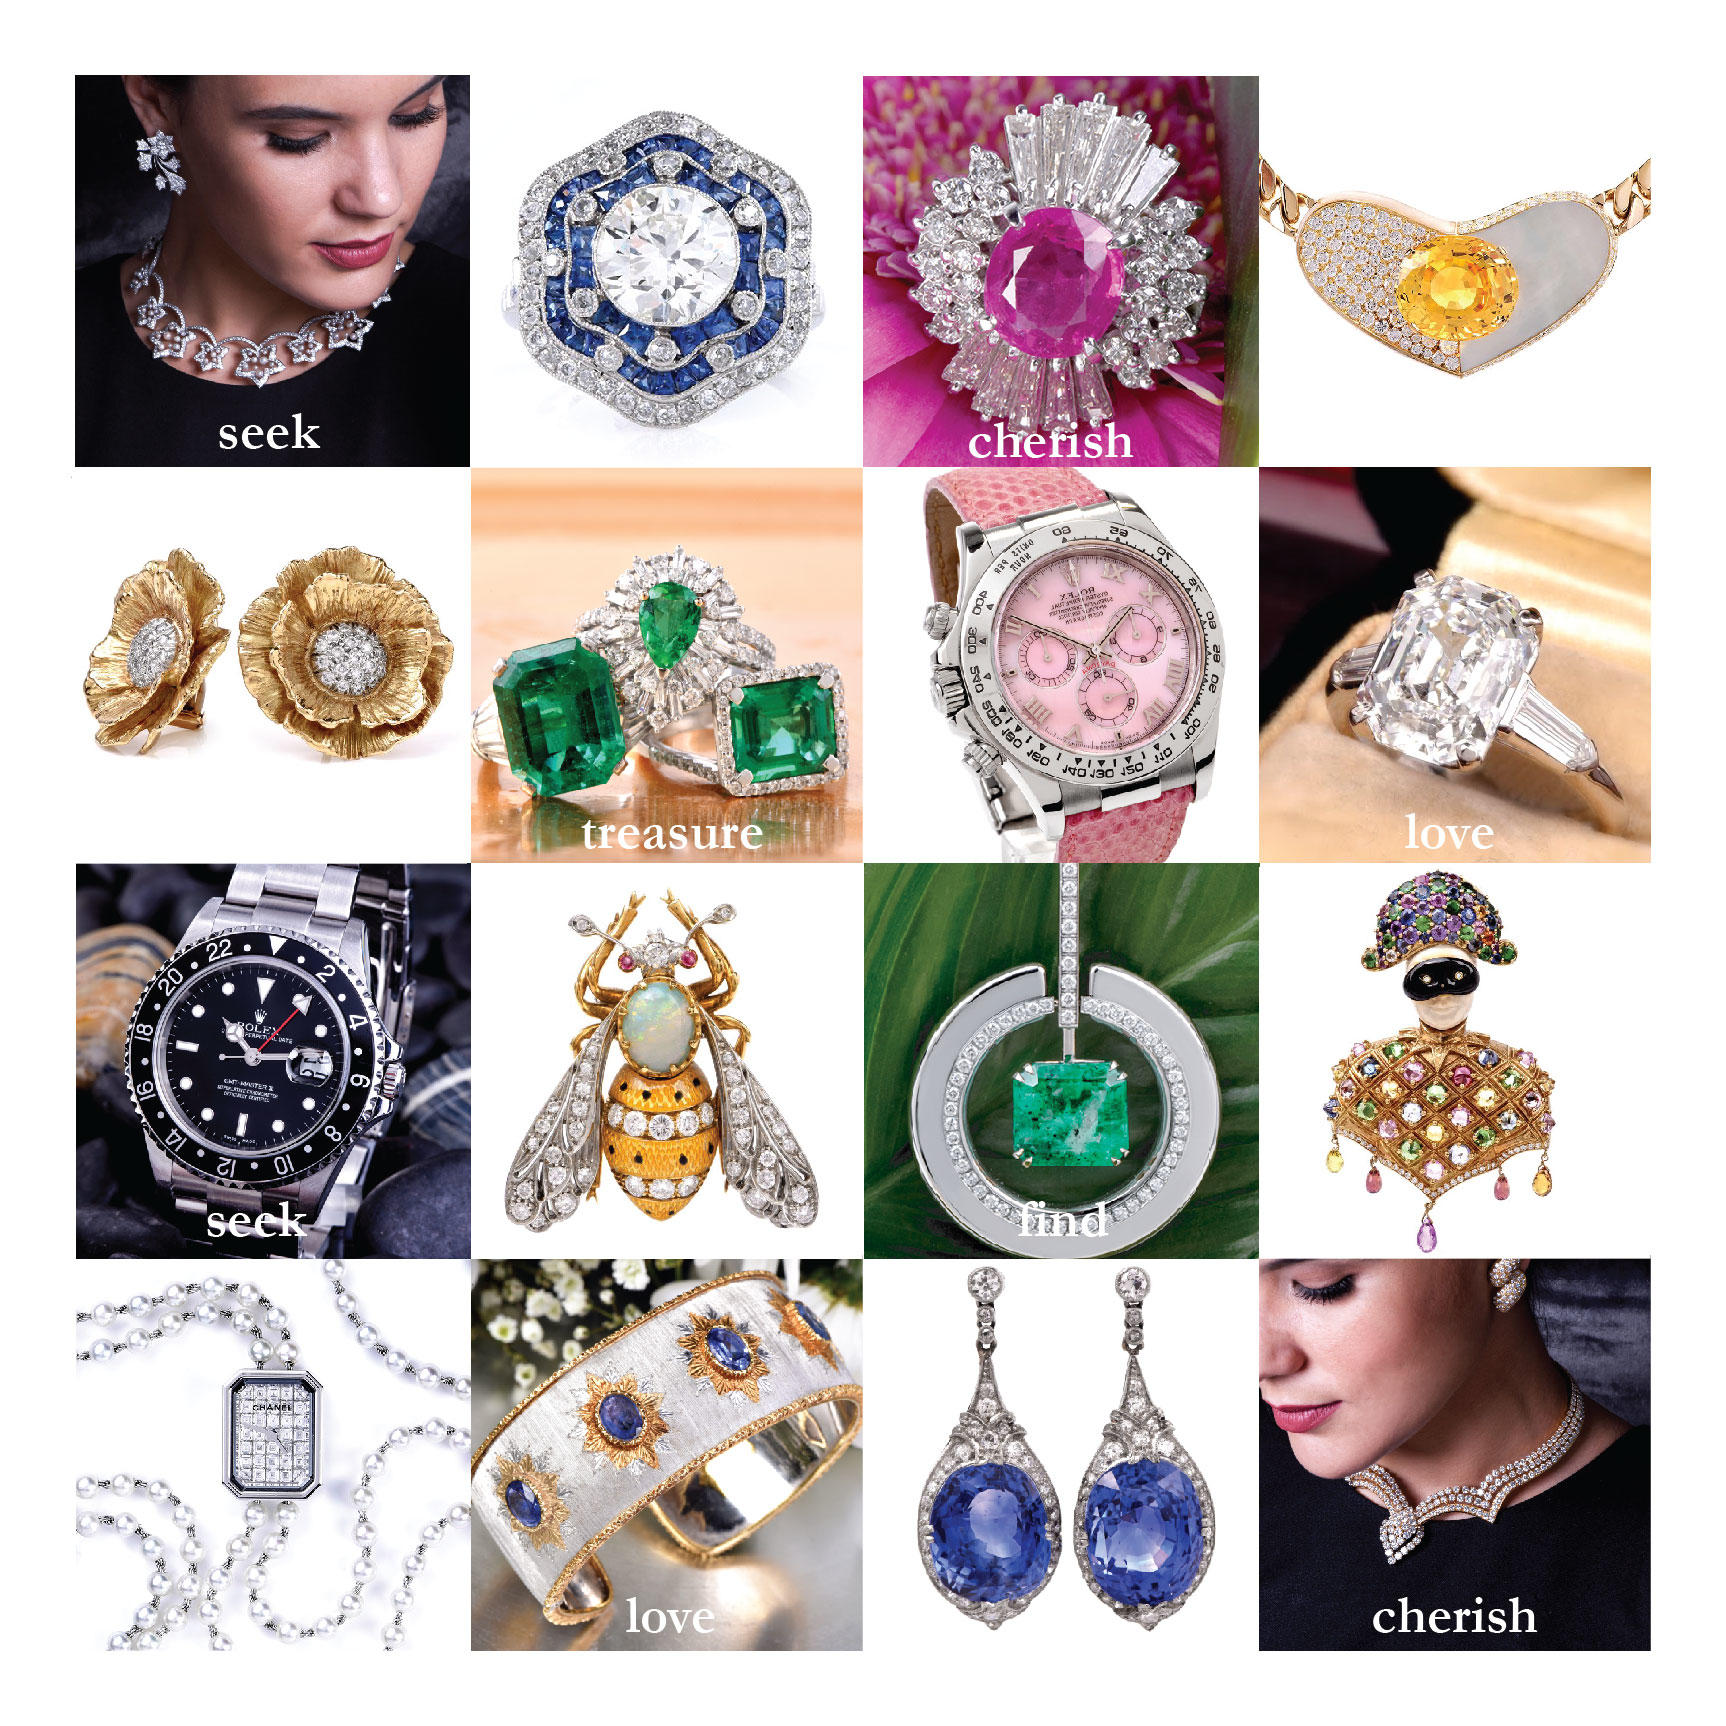 Dover jewelry diamonds coupons near me in miami 8coupons for Jewelry consignment shops near me